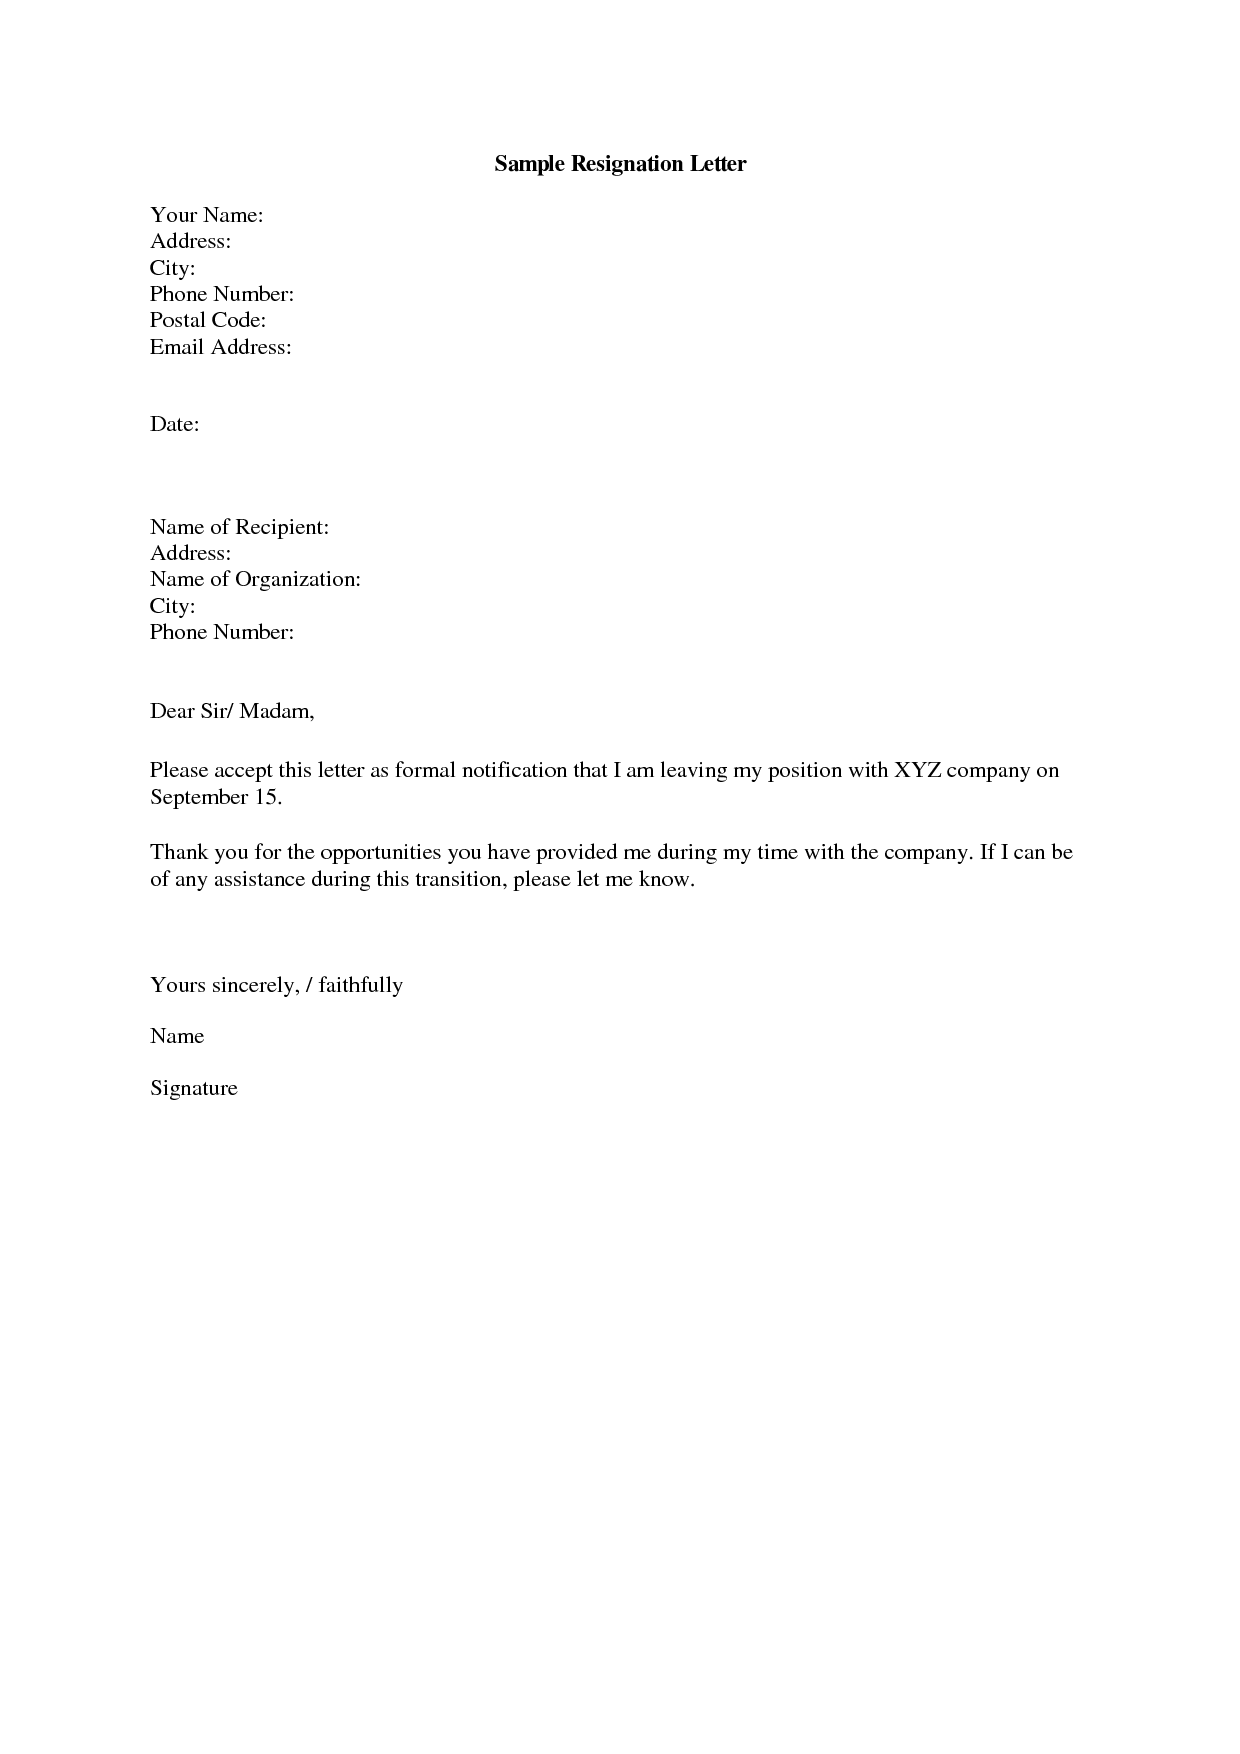 Simple Resignation Email Sample For Personal Reasons Sample Web H